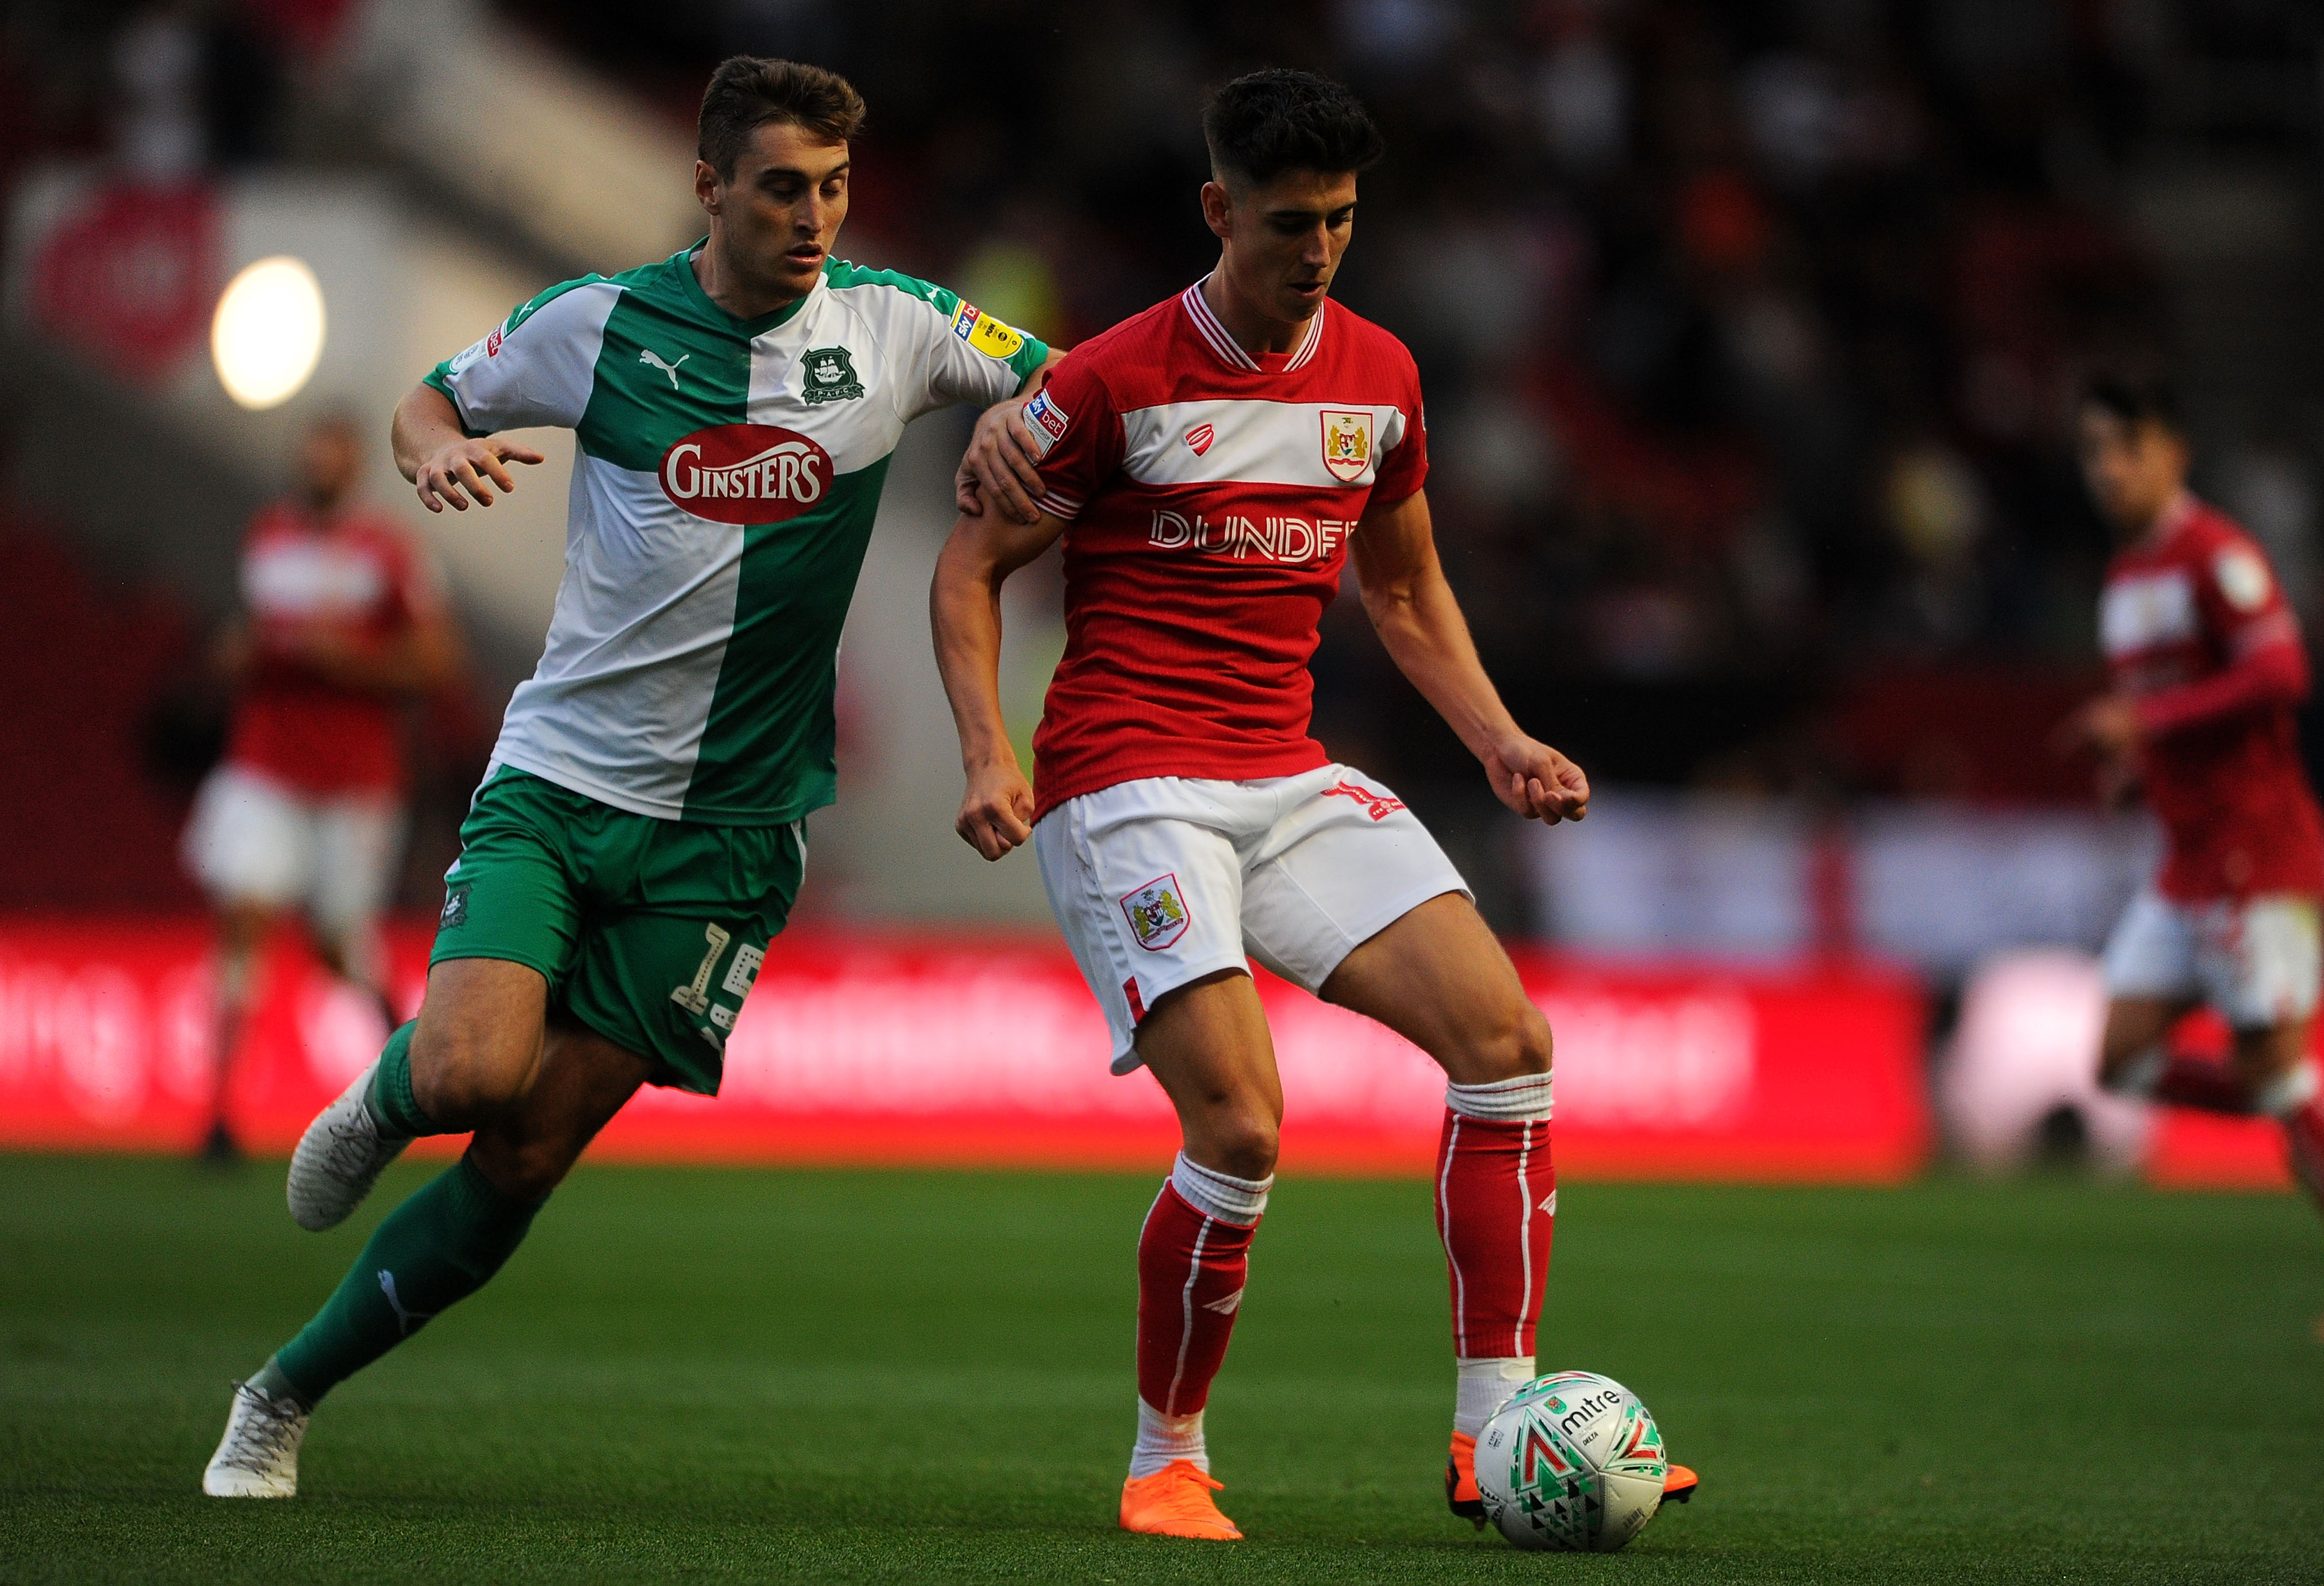 Bristol City v Plymouth Carabao Cup First Round 140818